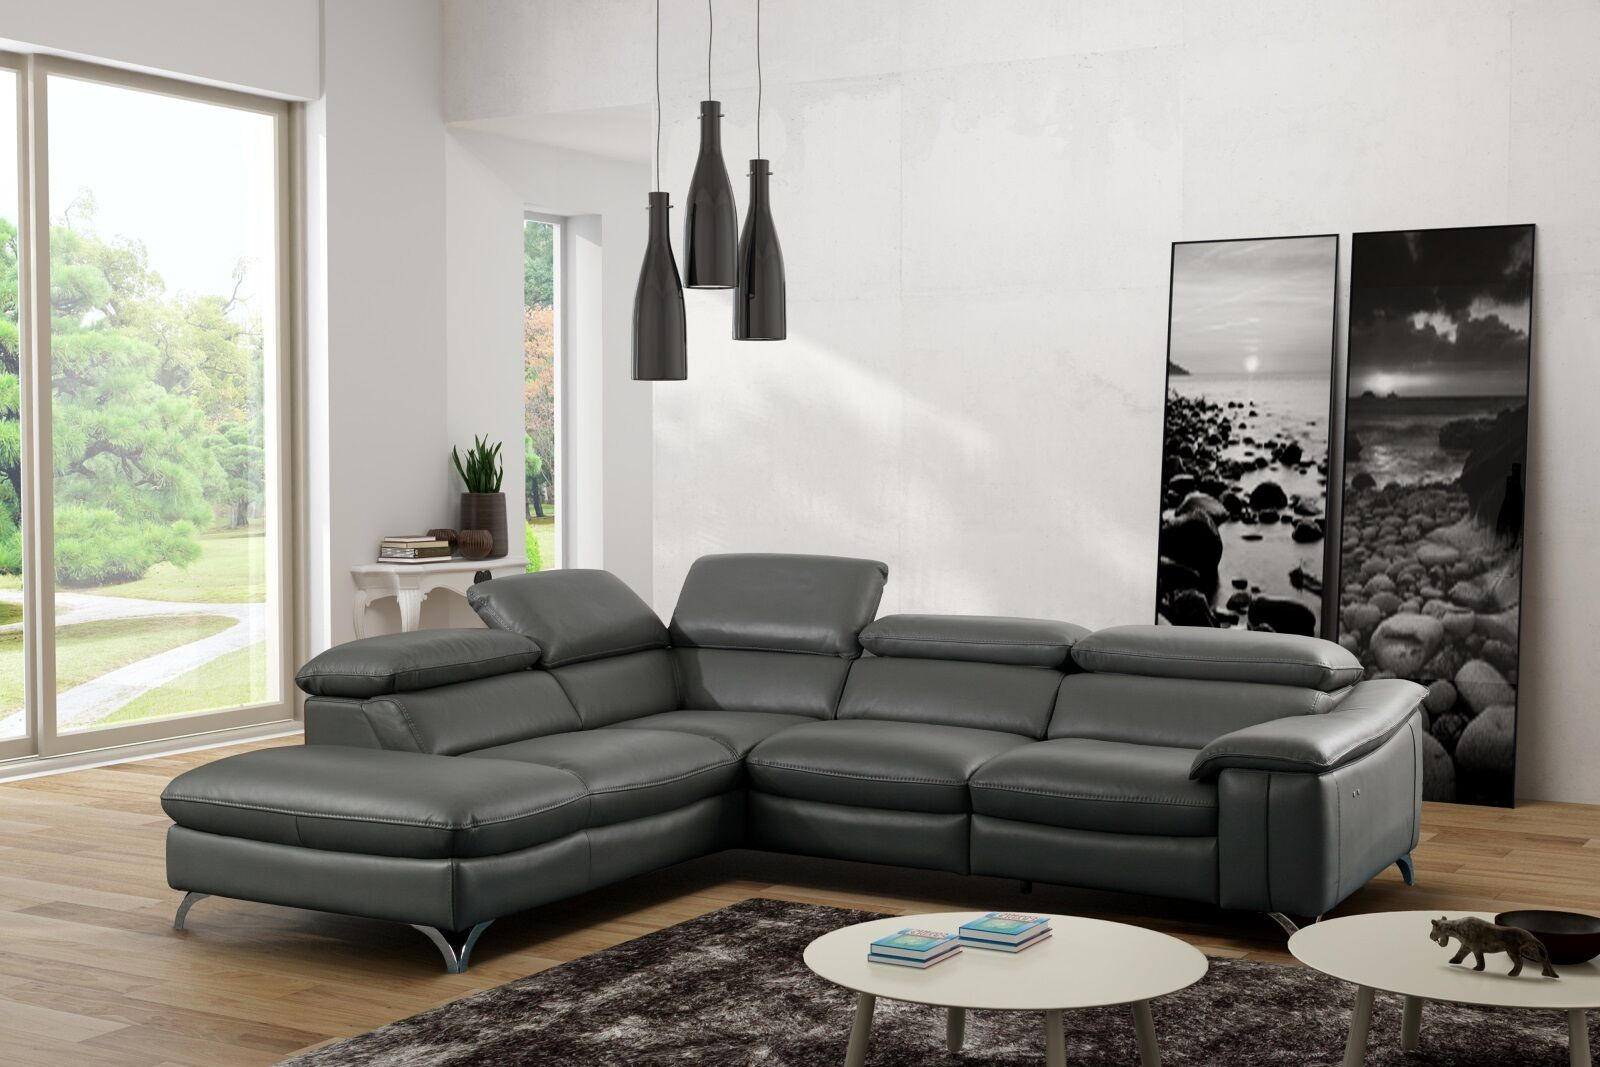 ledersofa marion eckcouch ecke wohnzimmer couch sofa marion leder grau pu eur. Black Bedroom Furniture Sets. Home Design Ideas